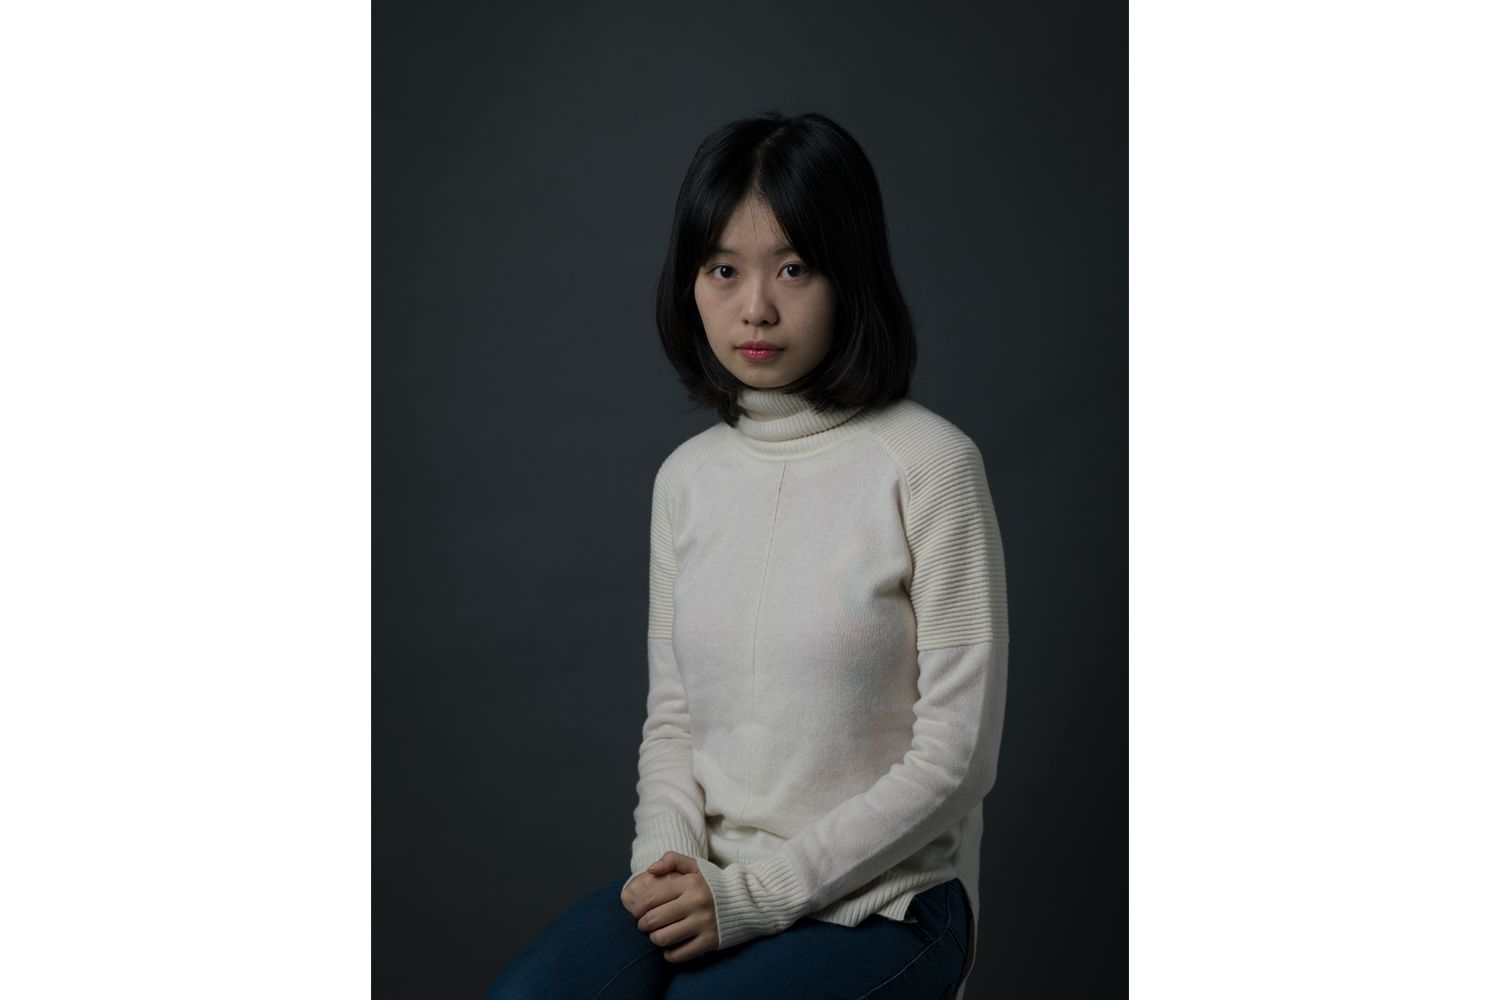 Zhou, 25, poses for a portrait, in Beijing, December 9. On September 25, while she was at one court filing a claim against Zhu for infringement of her right to personal dignity, Zhou received official notification from another court that Zhu had sued her for defamation. Also named in the defamation suit was Xu Chao, a friend of a friend, who had first posted Zhou's accusation on the social media platform Weibo.